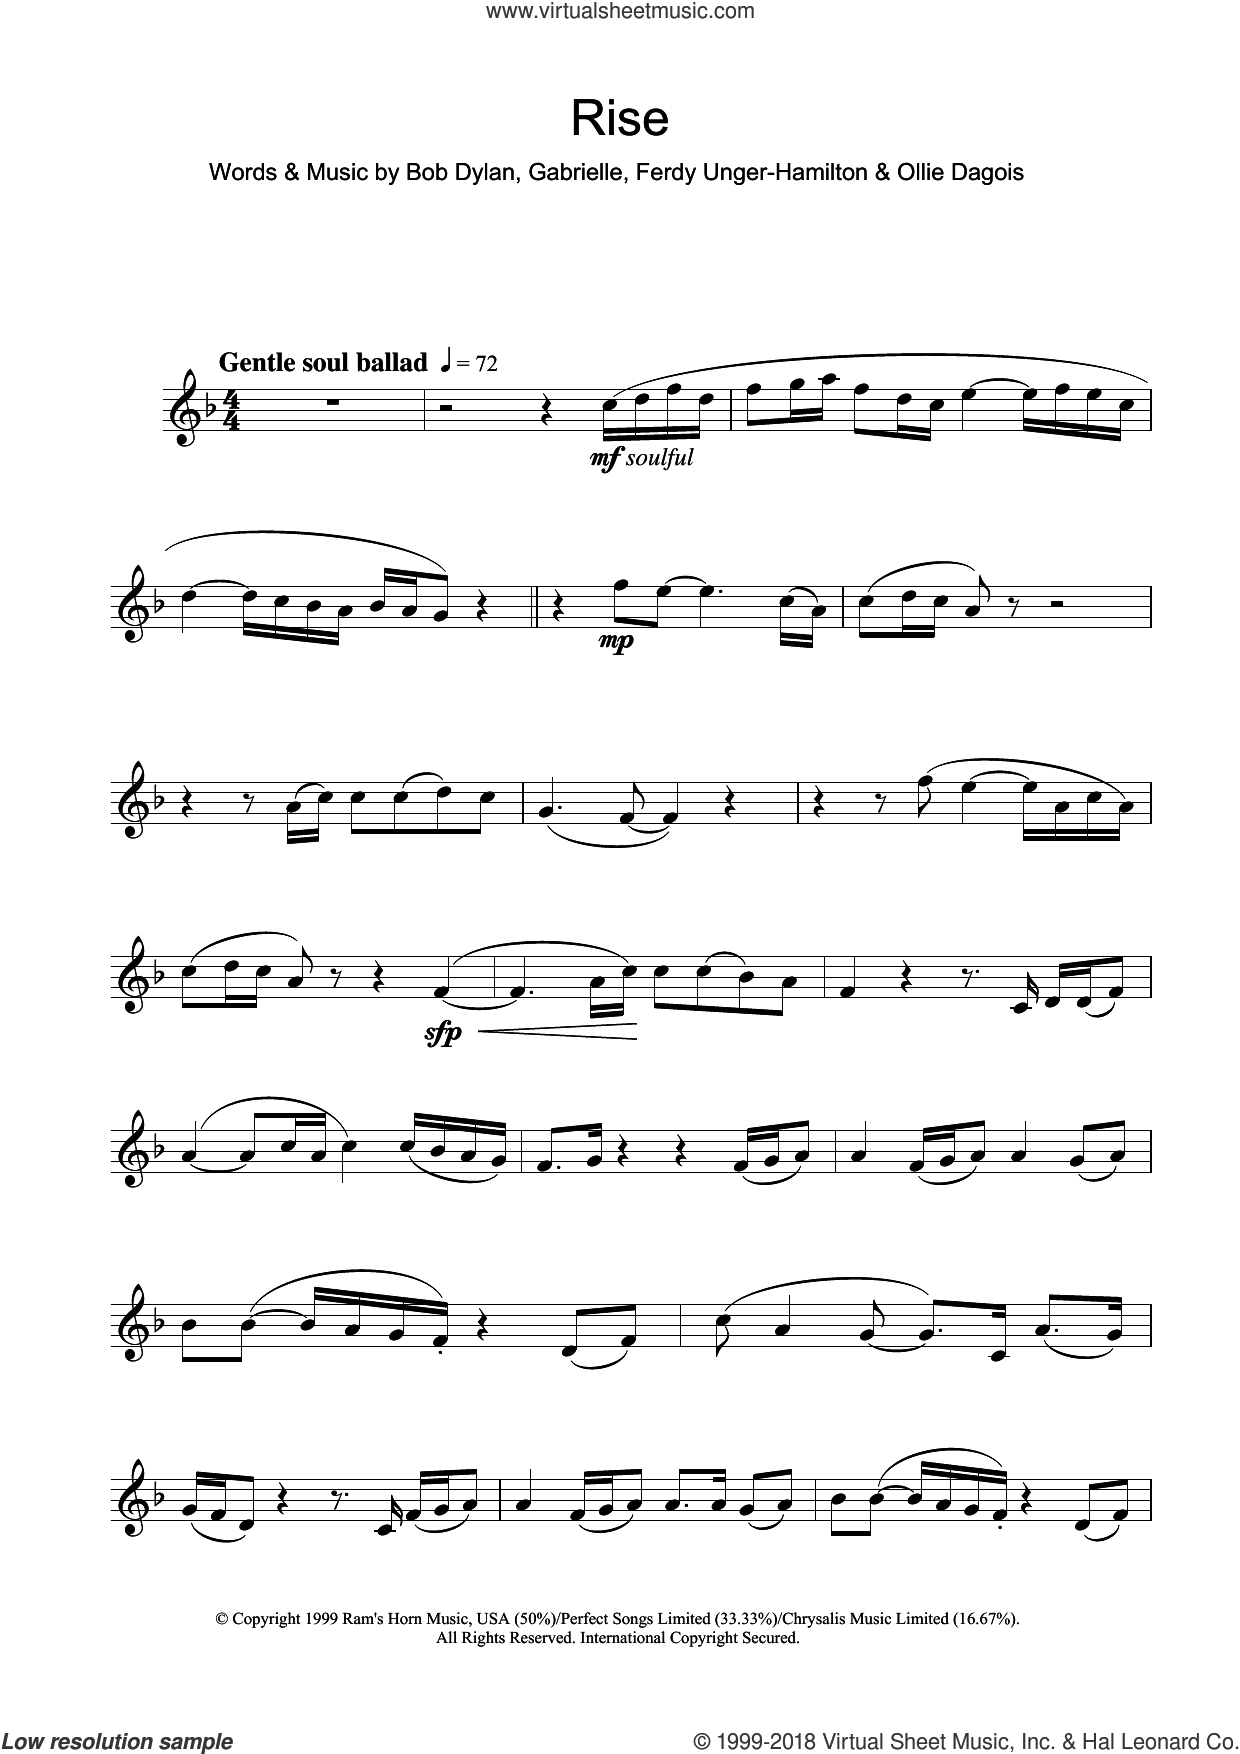 Rise sheet music for flute solo by Gabrielle, Bob Dylan, Ferdy Unger-Hamilton and Ollie Dagois, intermediate